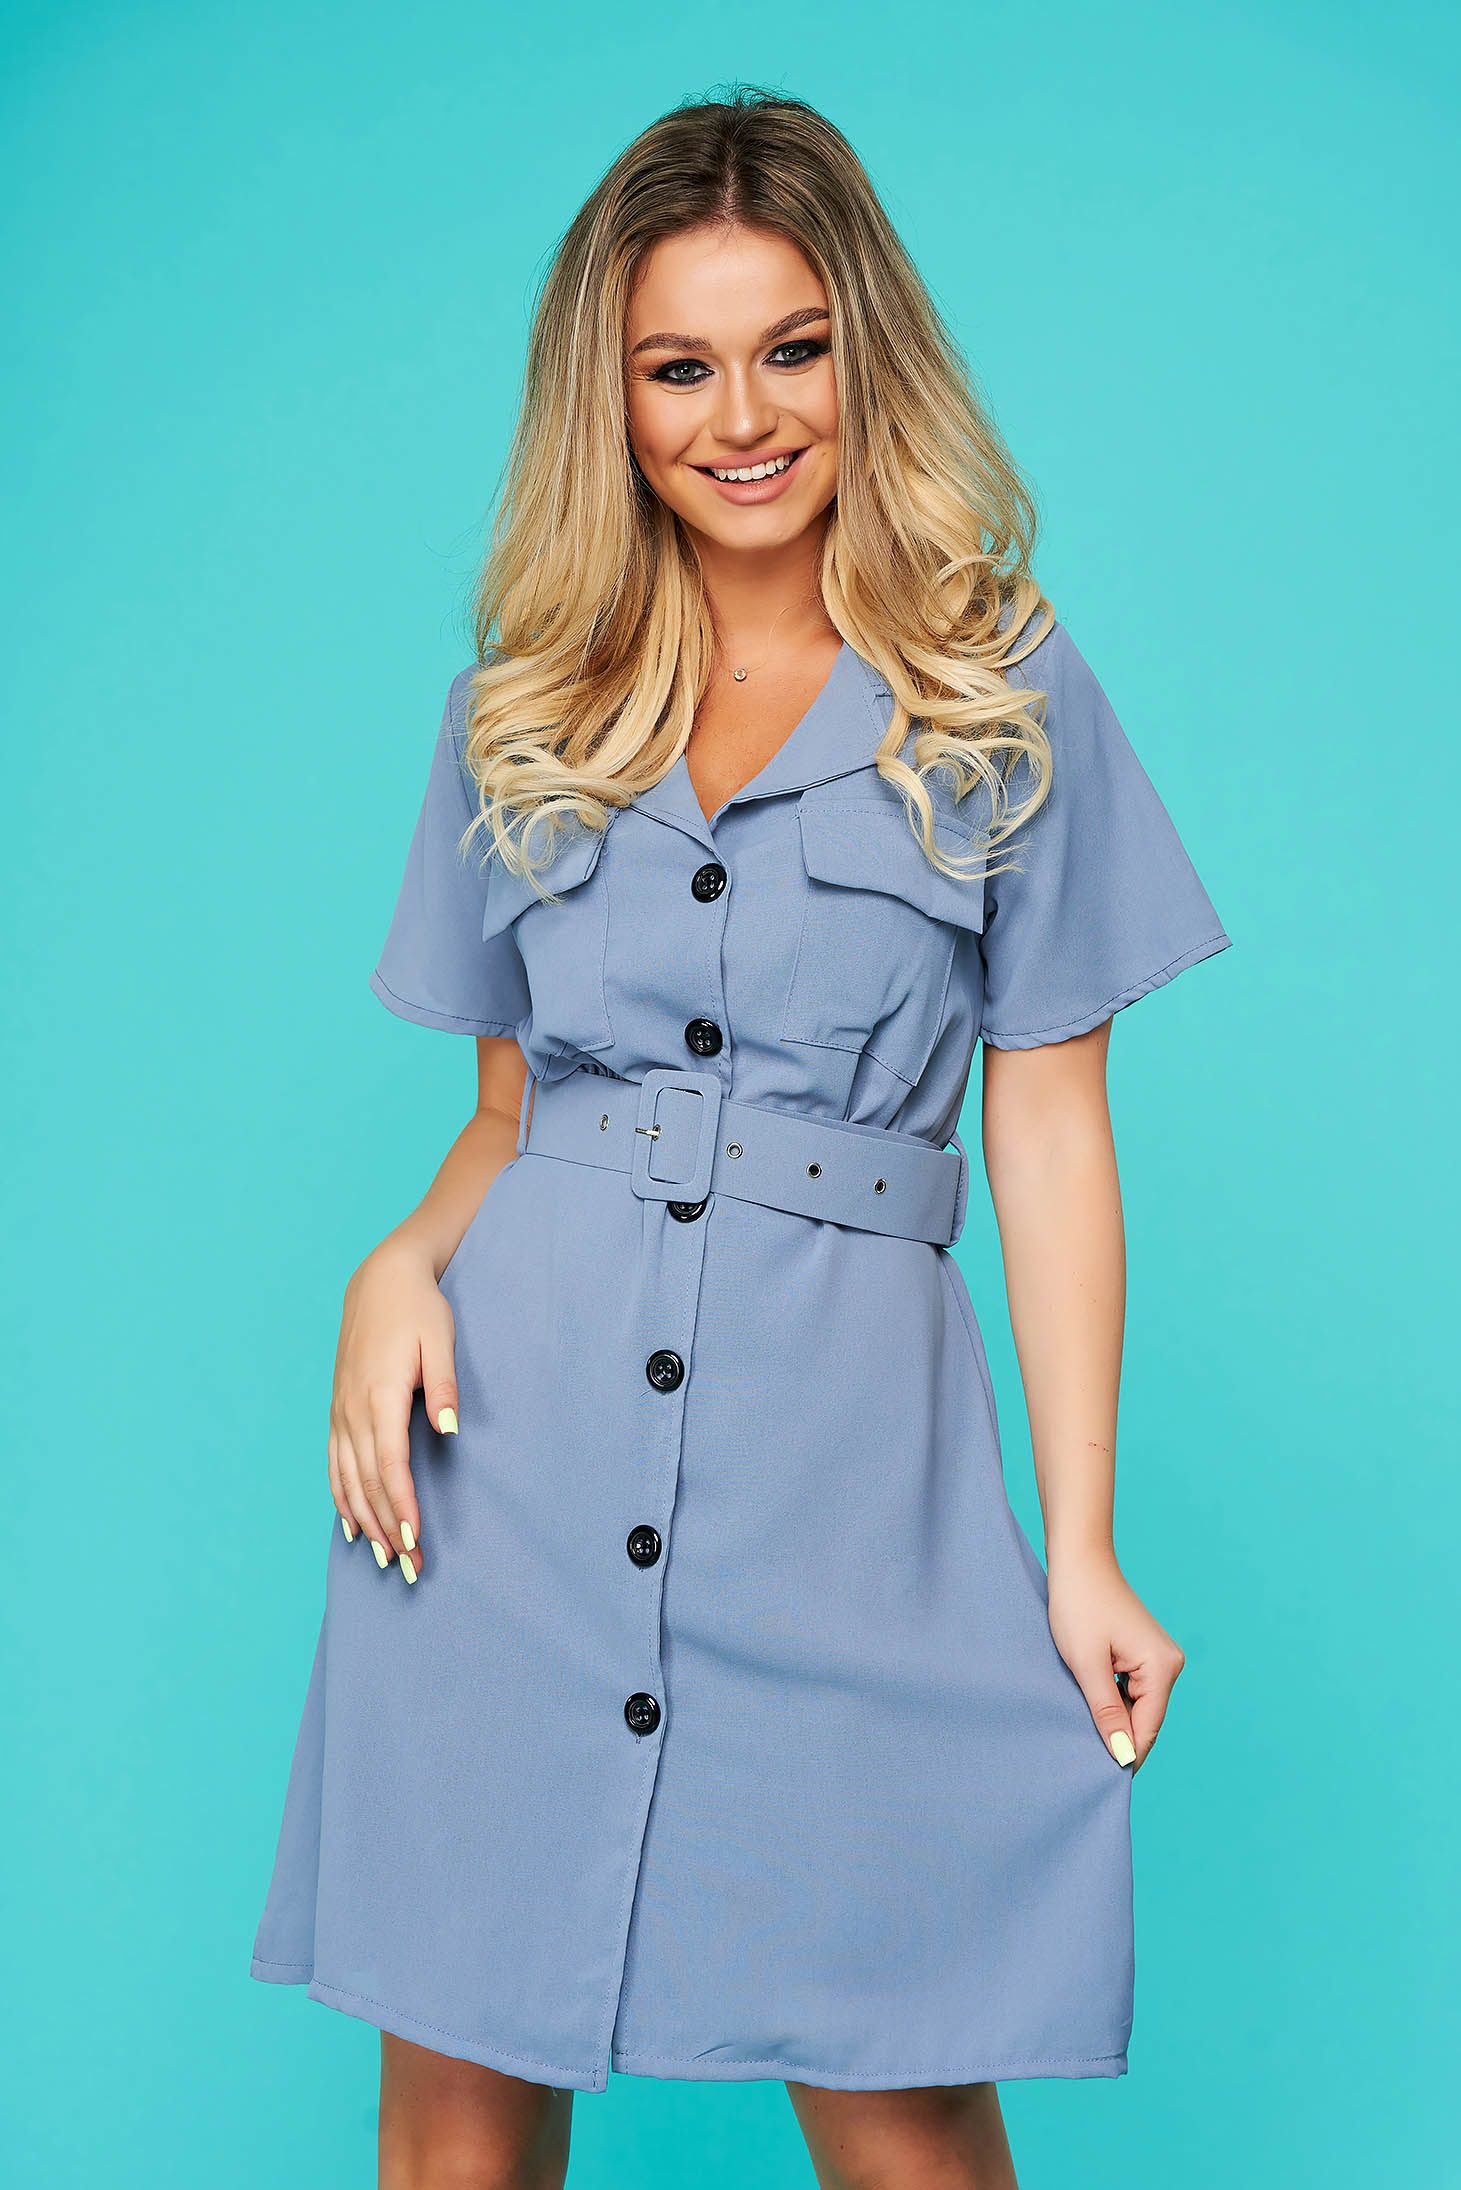 Blue dress short cut daily cloche with pockets thin fabric